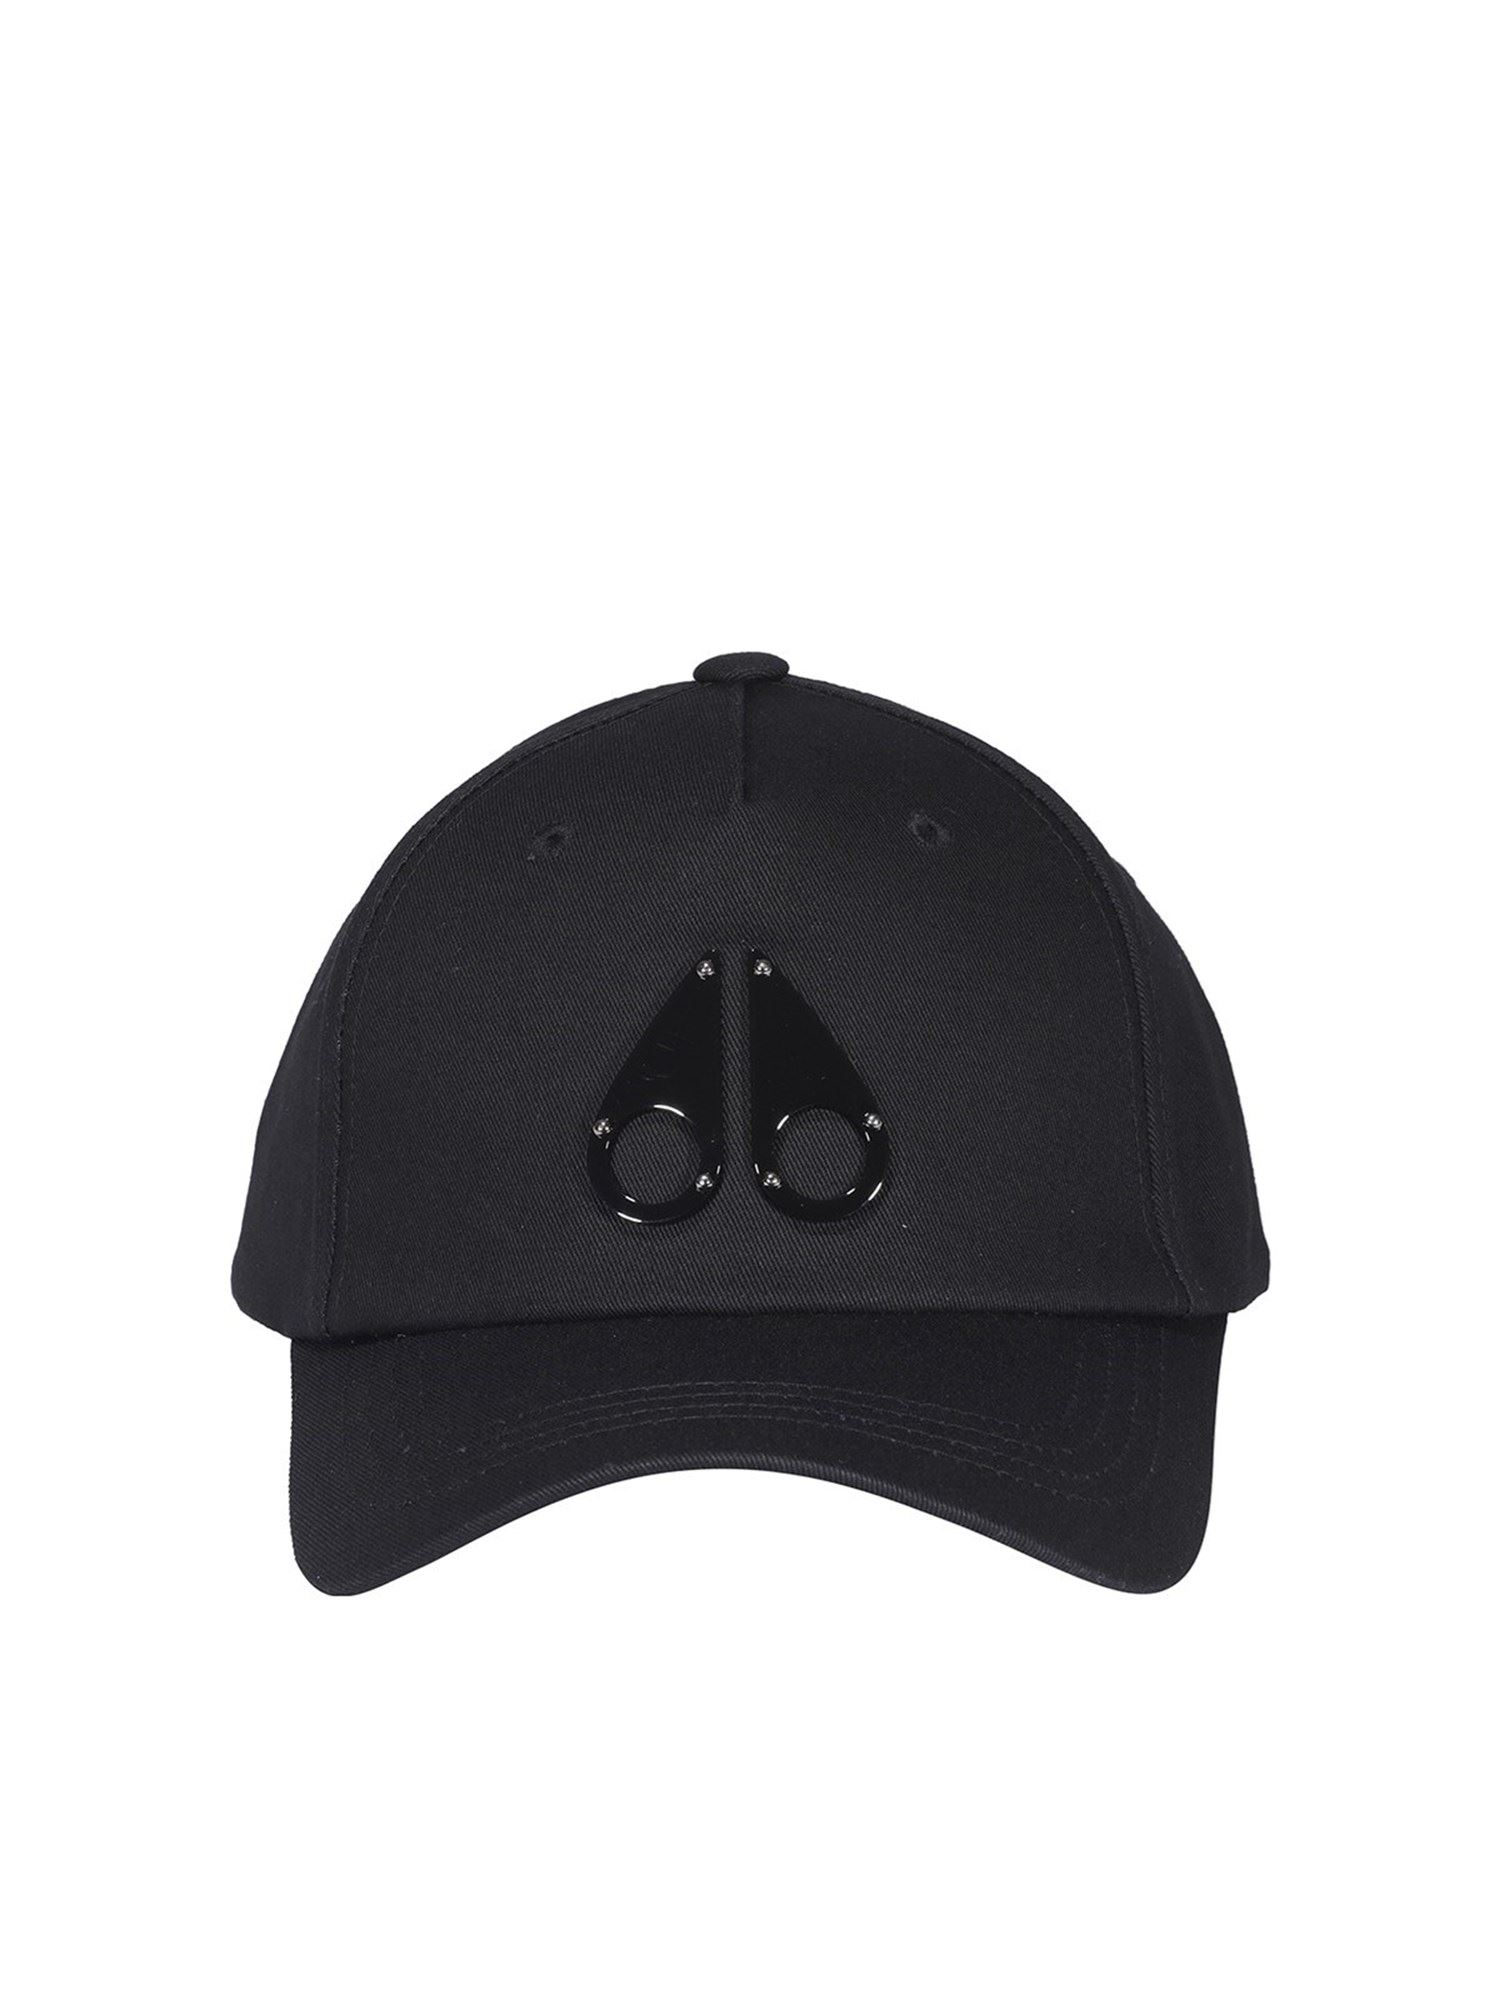 Moose Knuckles COTTON BASEBALL CAP IN BLACK